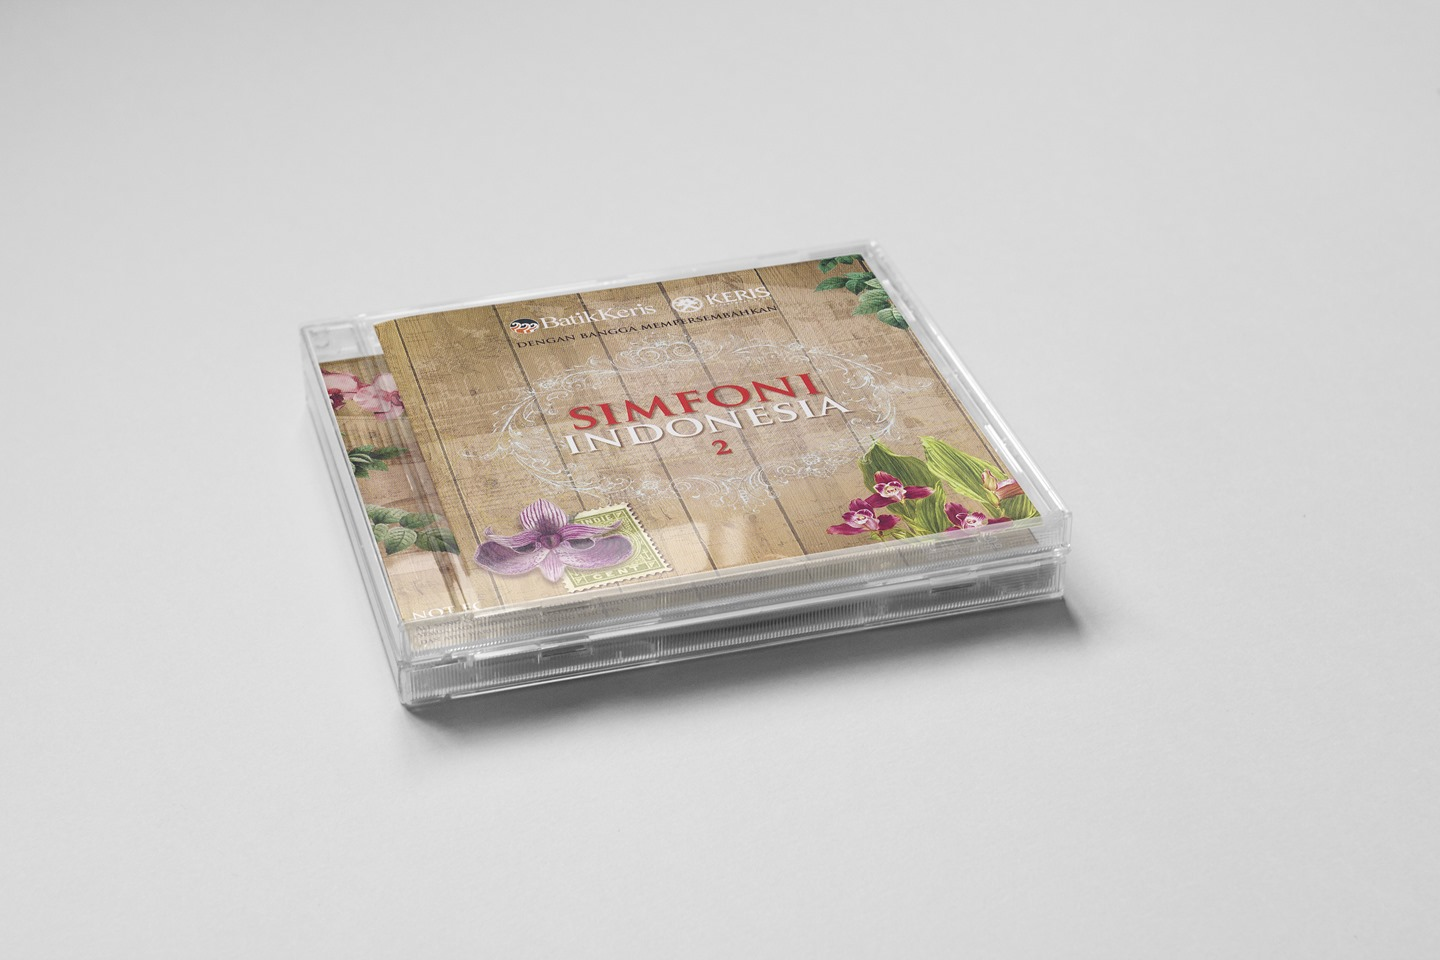 CD Simfoni Indonesia 2